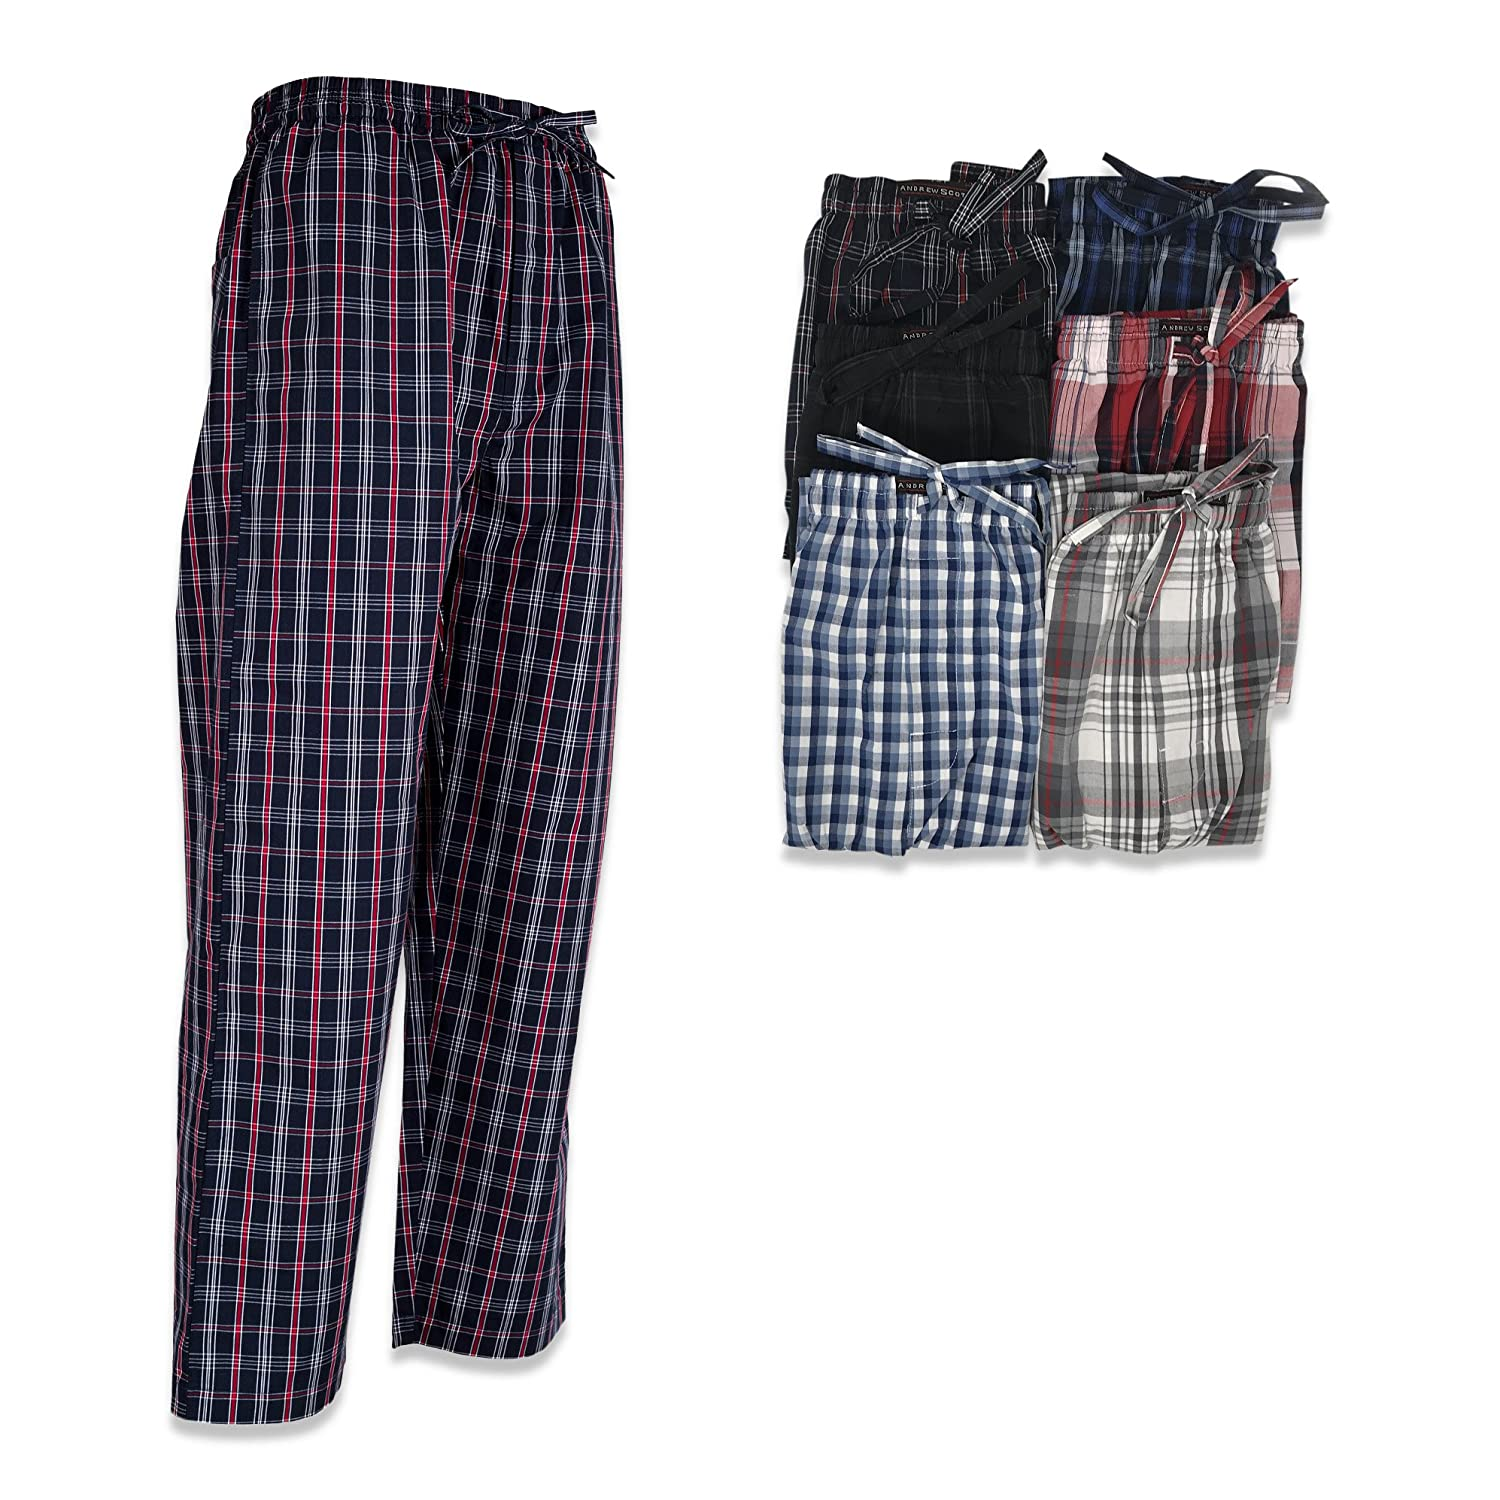 Andrew Scott Boys 6 Pack Woven and 3 Pack Brushed Jog Pant 7844CX6-78442CX3